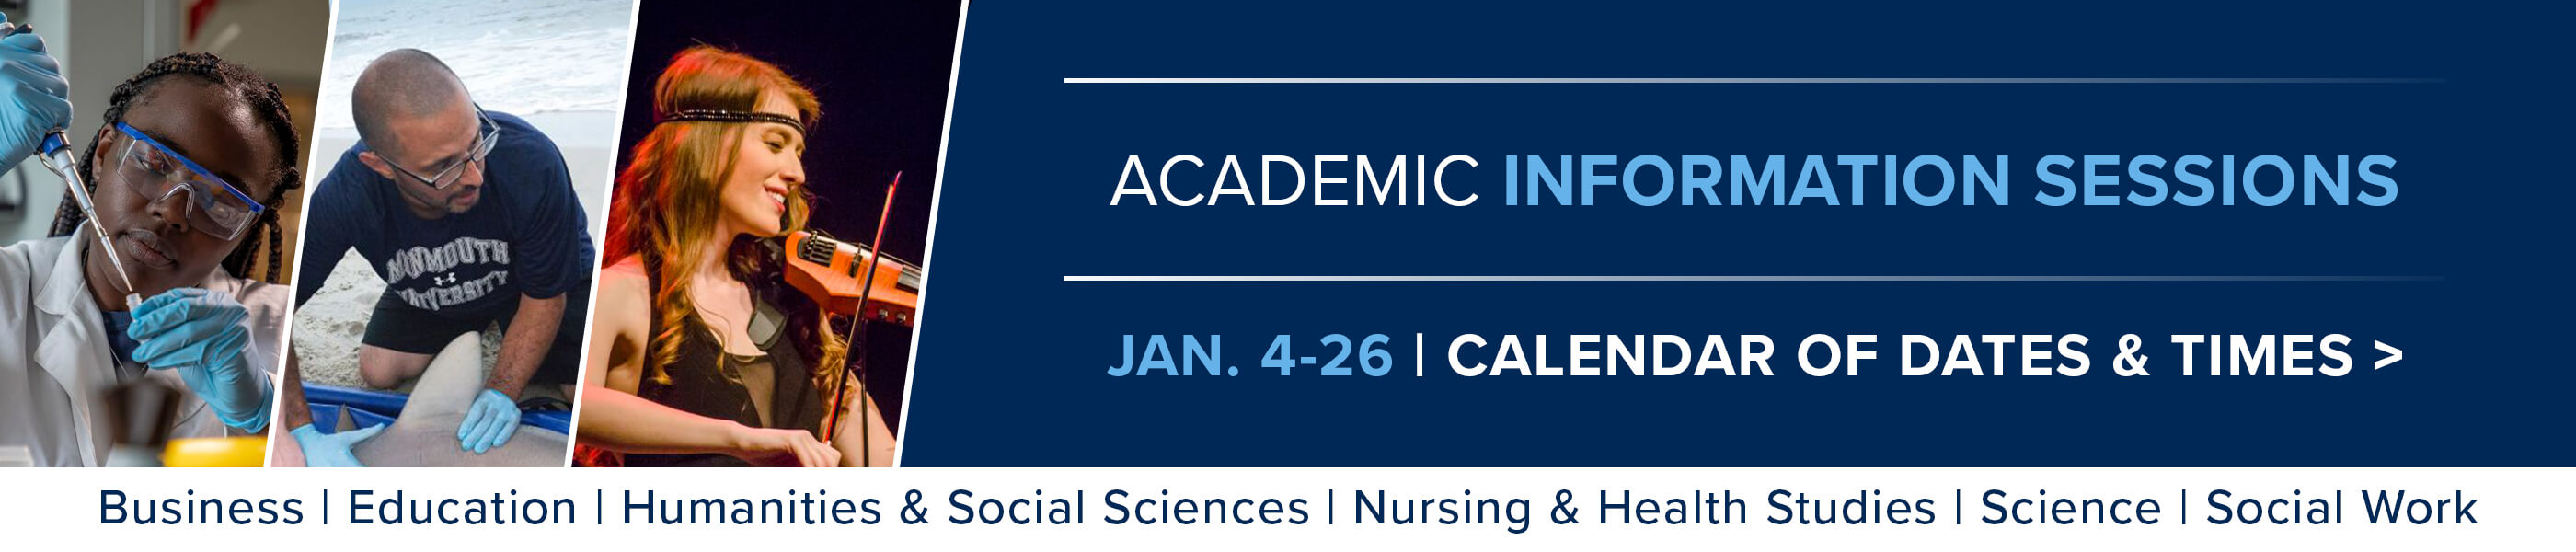 Academic Information Sessions. January fourth to the twenty-sixth. Calendar of Dates and Times. Business, Education, Humanities and Social Sciences, Nursing and Health Studies, Science, Social Work